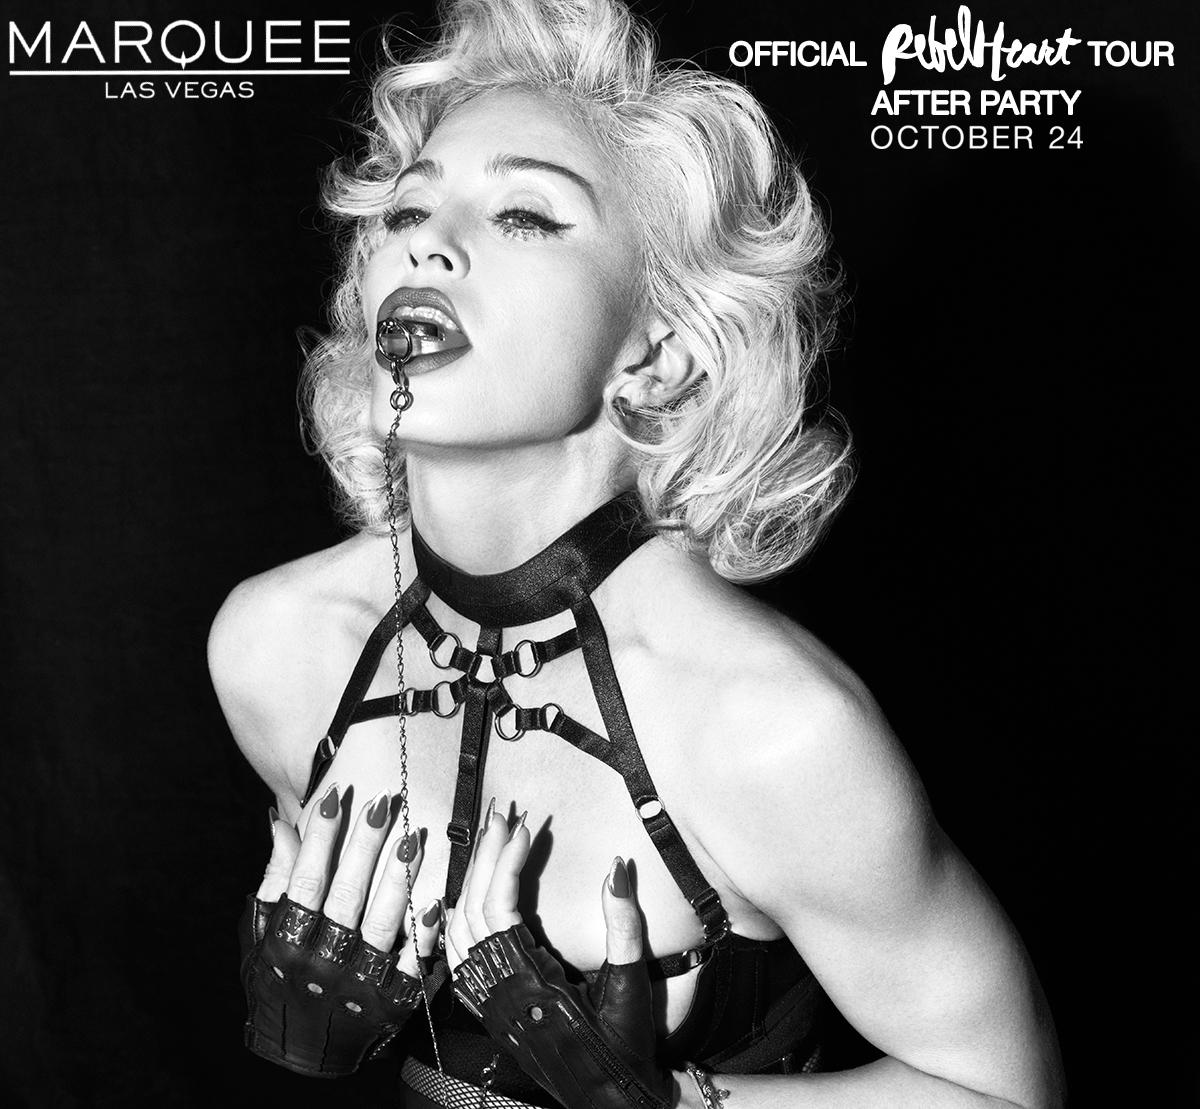 Official #RebelHeartTour After Party at @MarqueeLV on Oct 24! Get your tickets here https://t.co/WhhlCHYfNL https://t.co/E2TkN4cIld